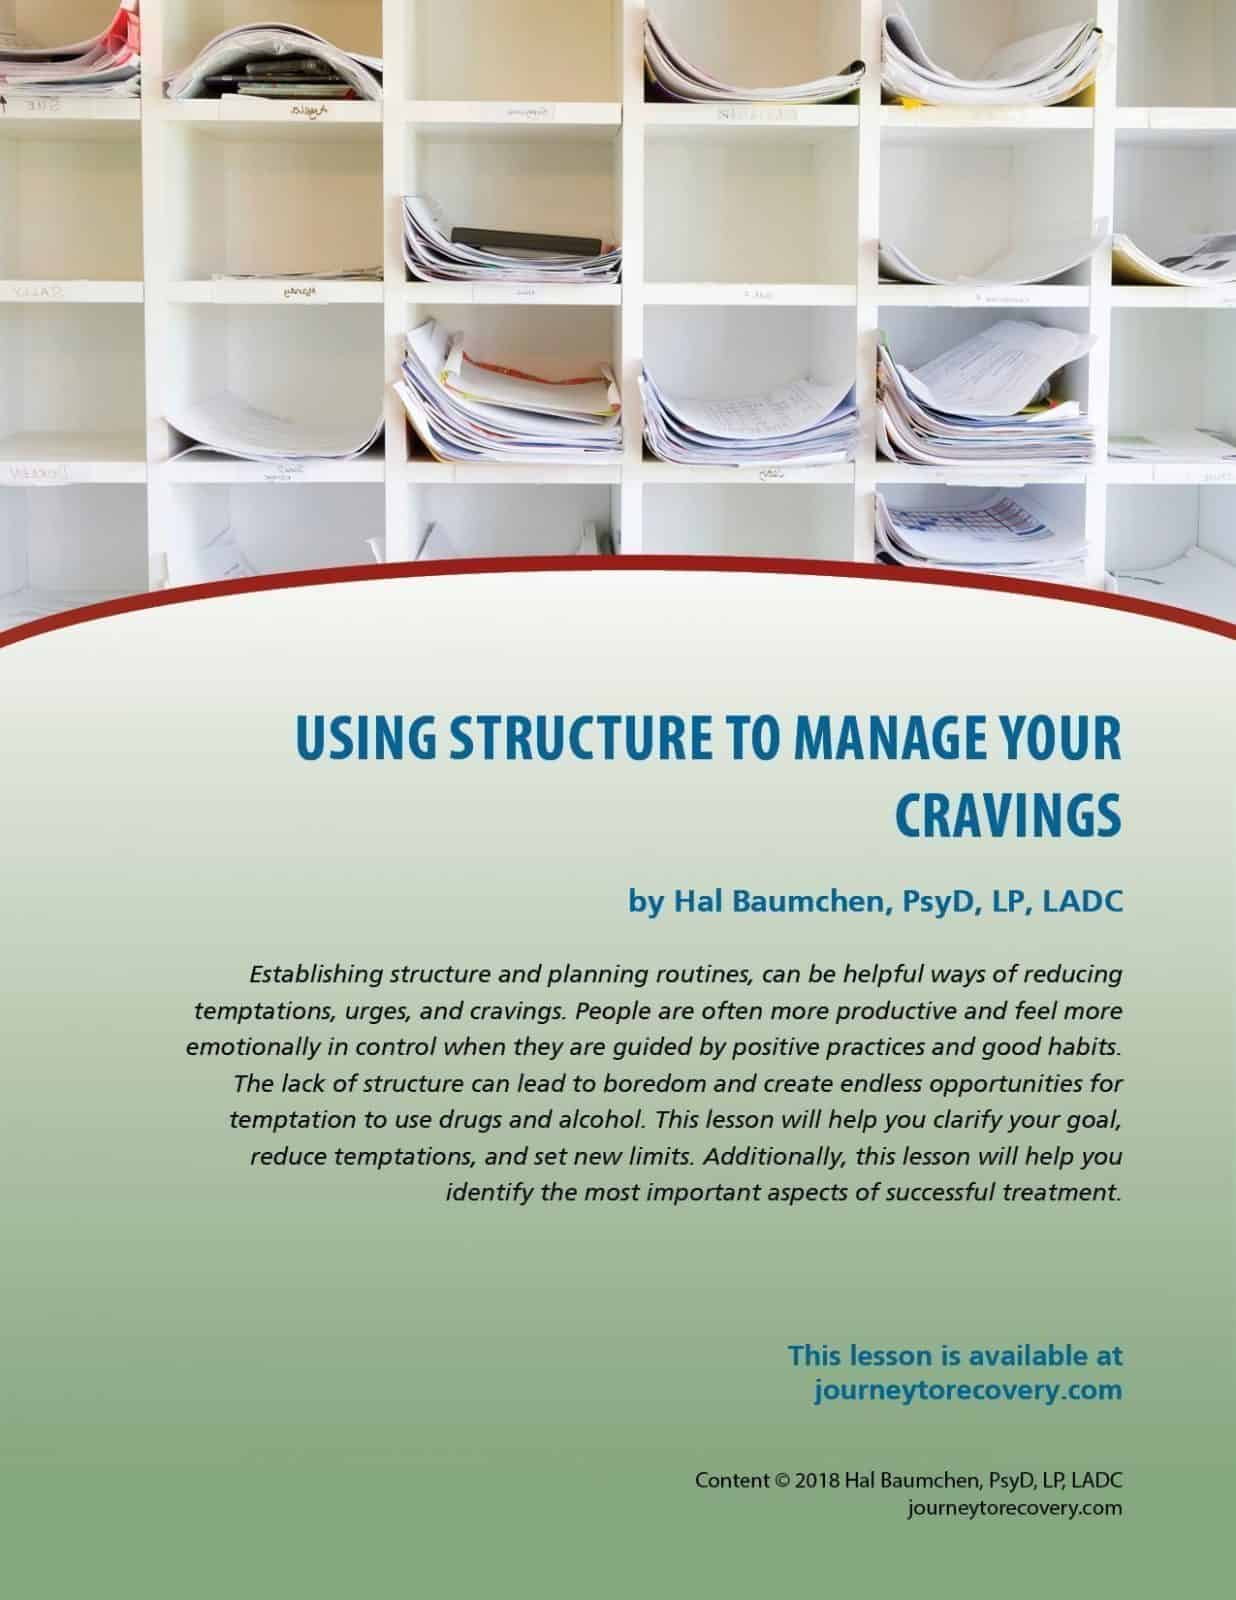 Using Structure to Manage Cravings (COD Lesson)